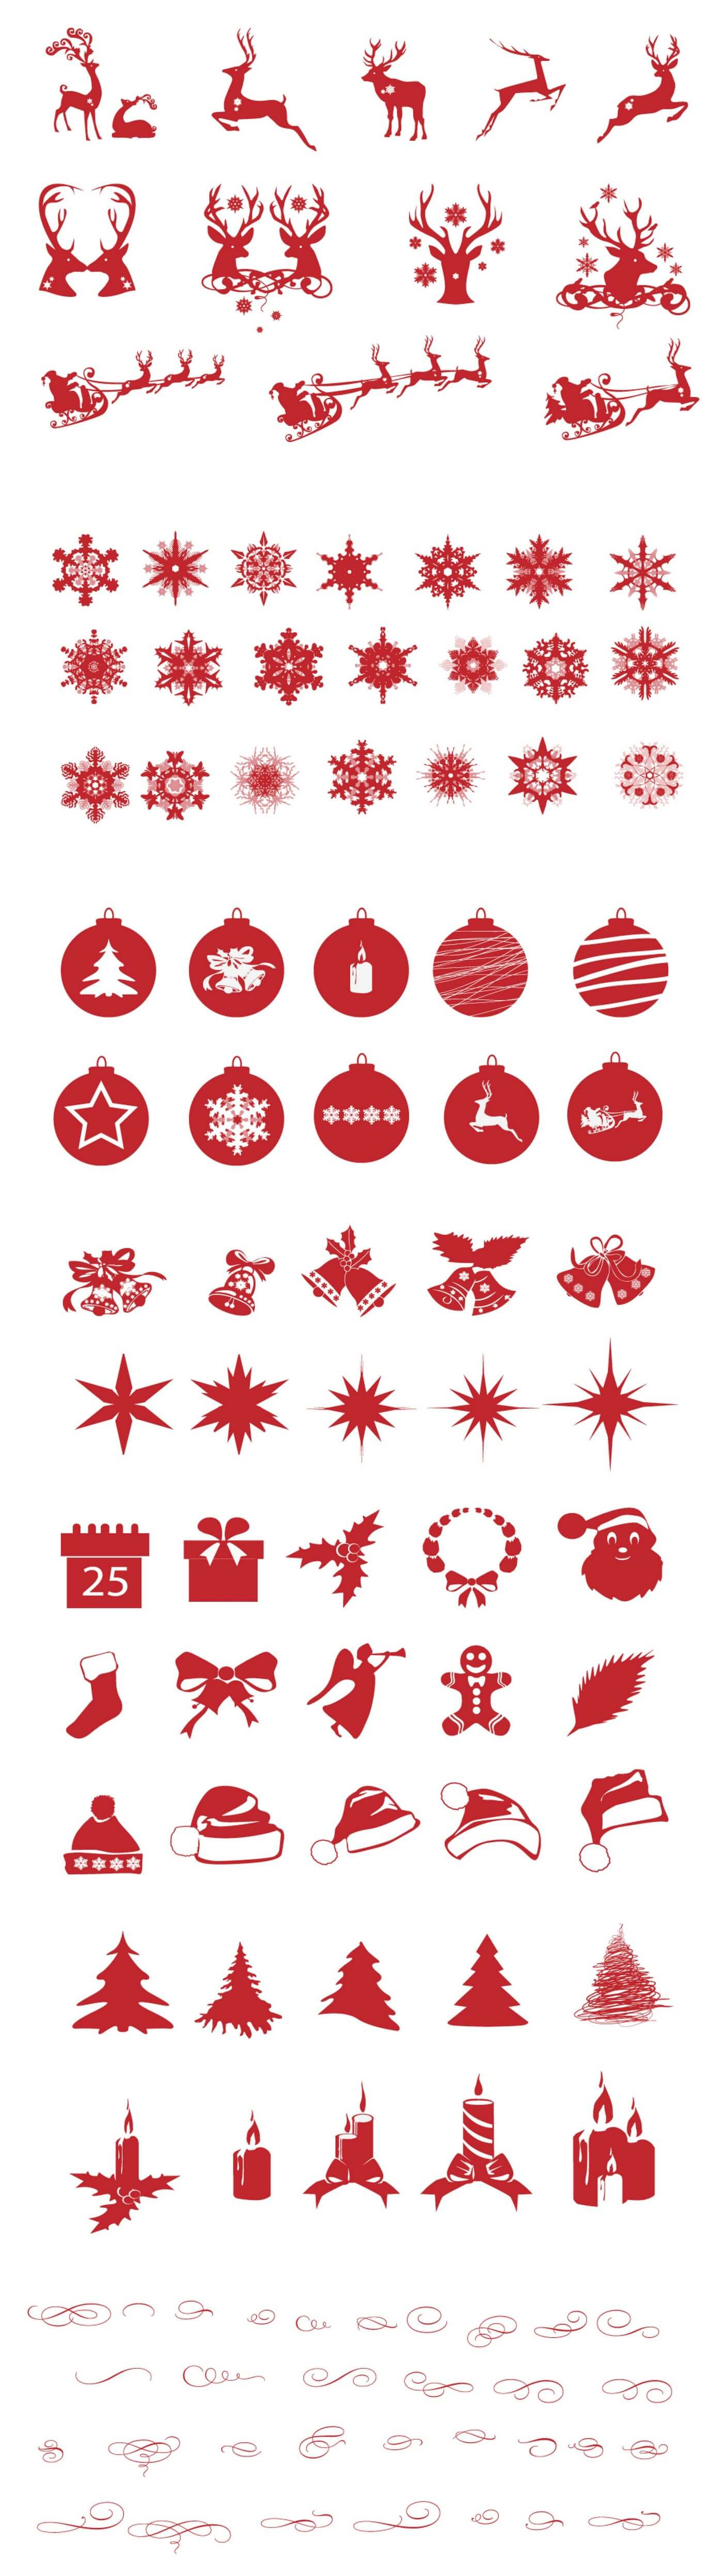 Christmas_Silhouettes_Mega_Pack